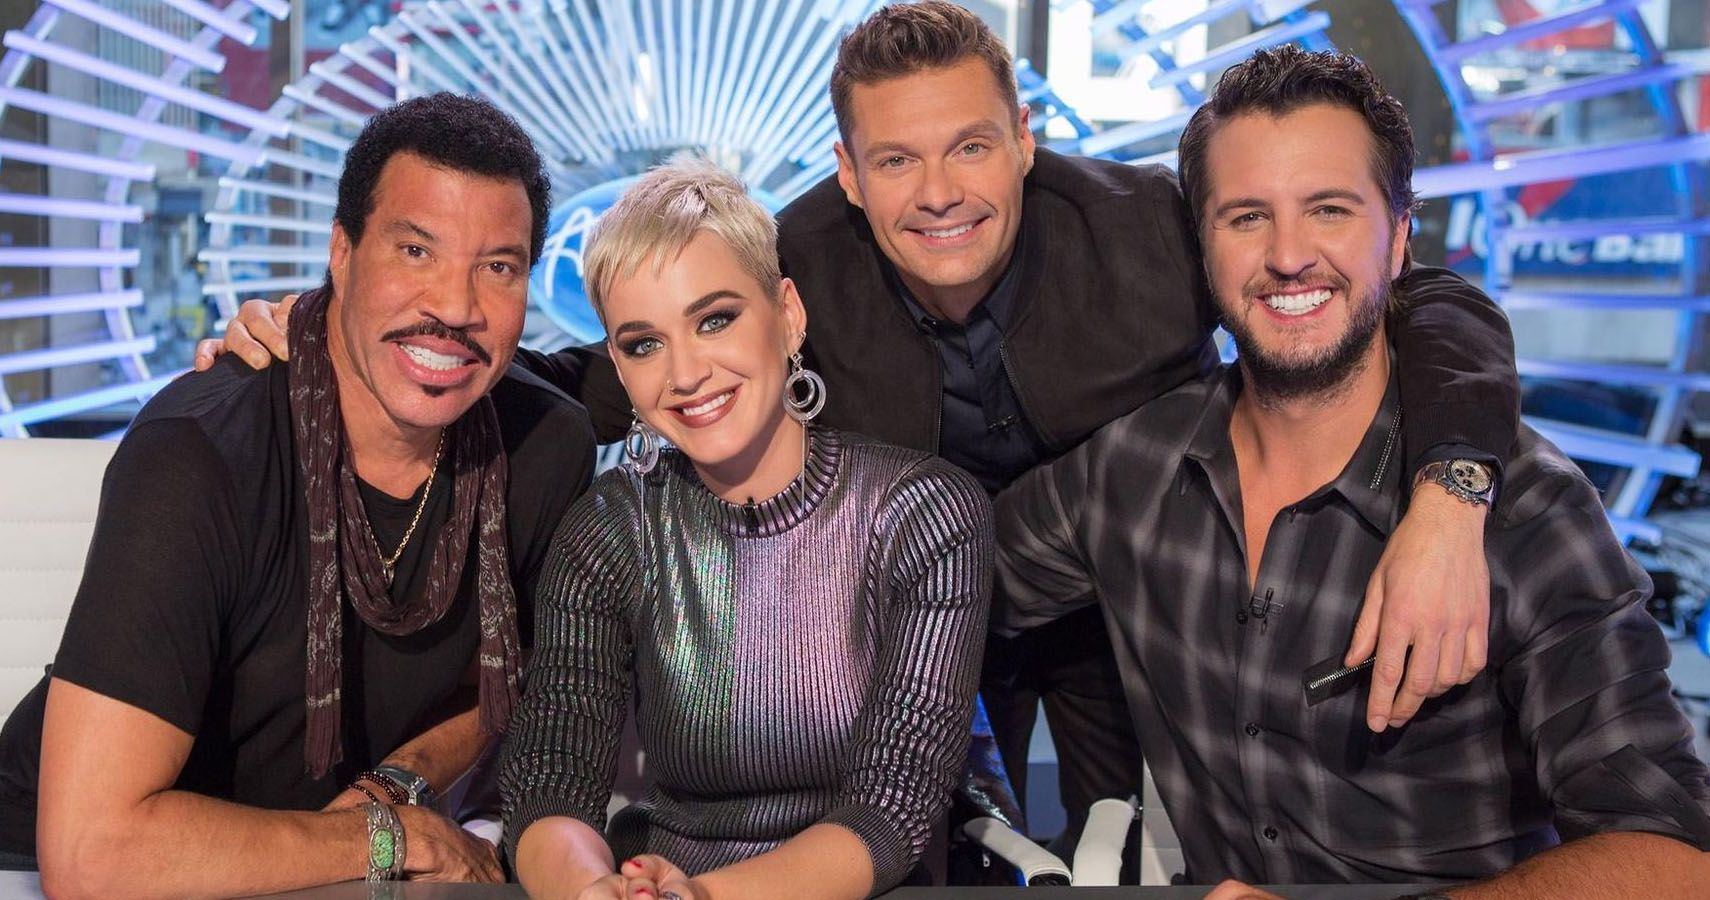 American Idol: 25 Rules Every Contestant Needs To Follow